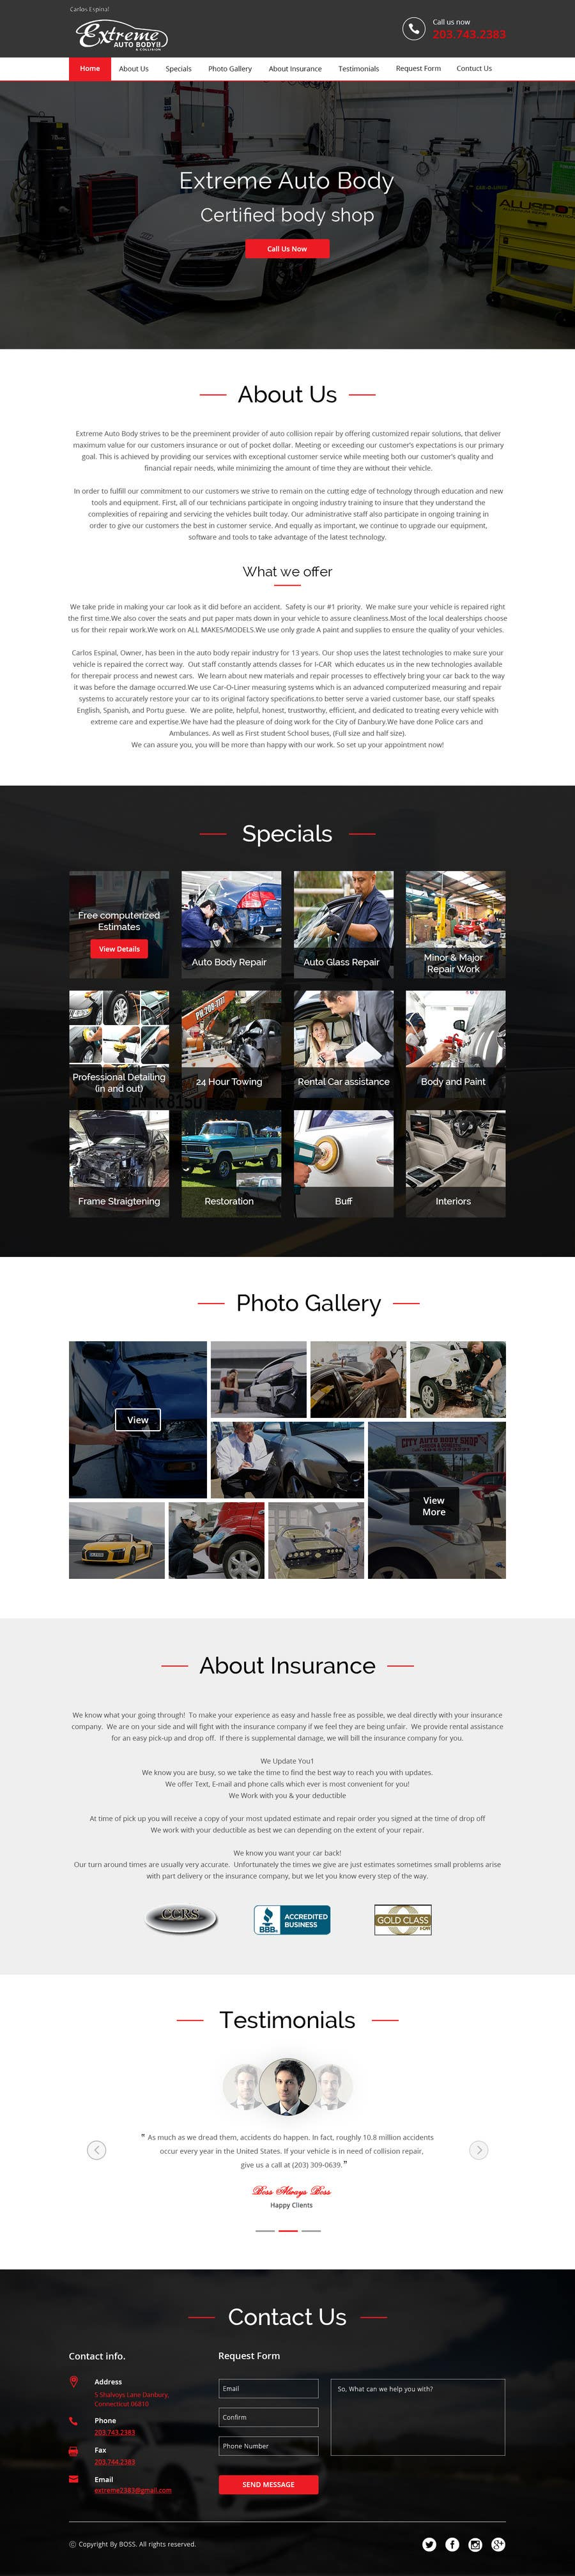 Proposition n°8 du concours Auto body website mockup home page